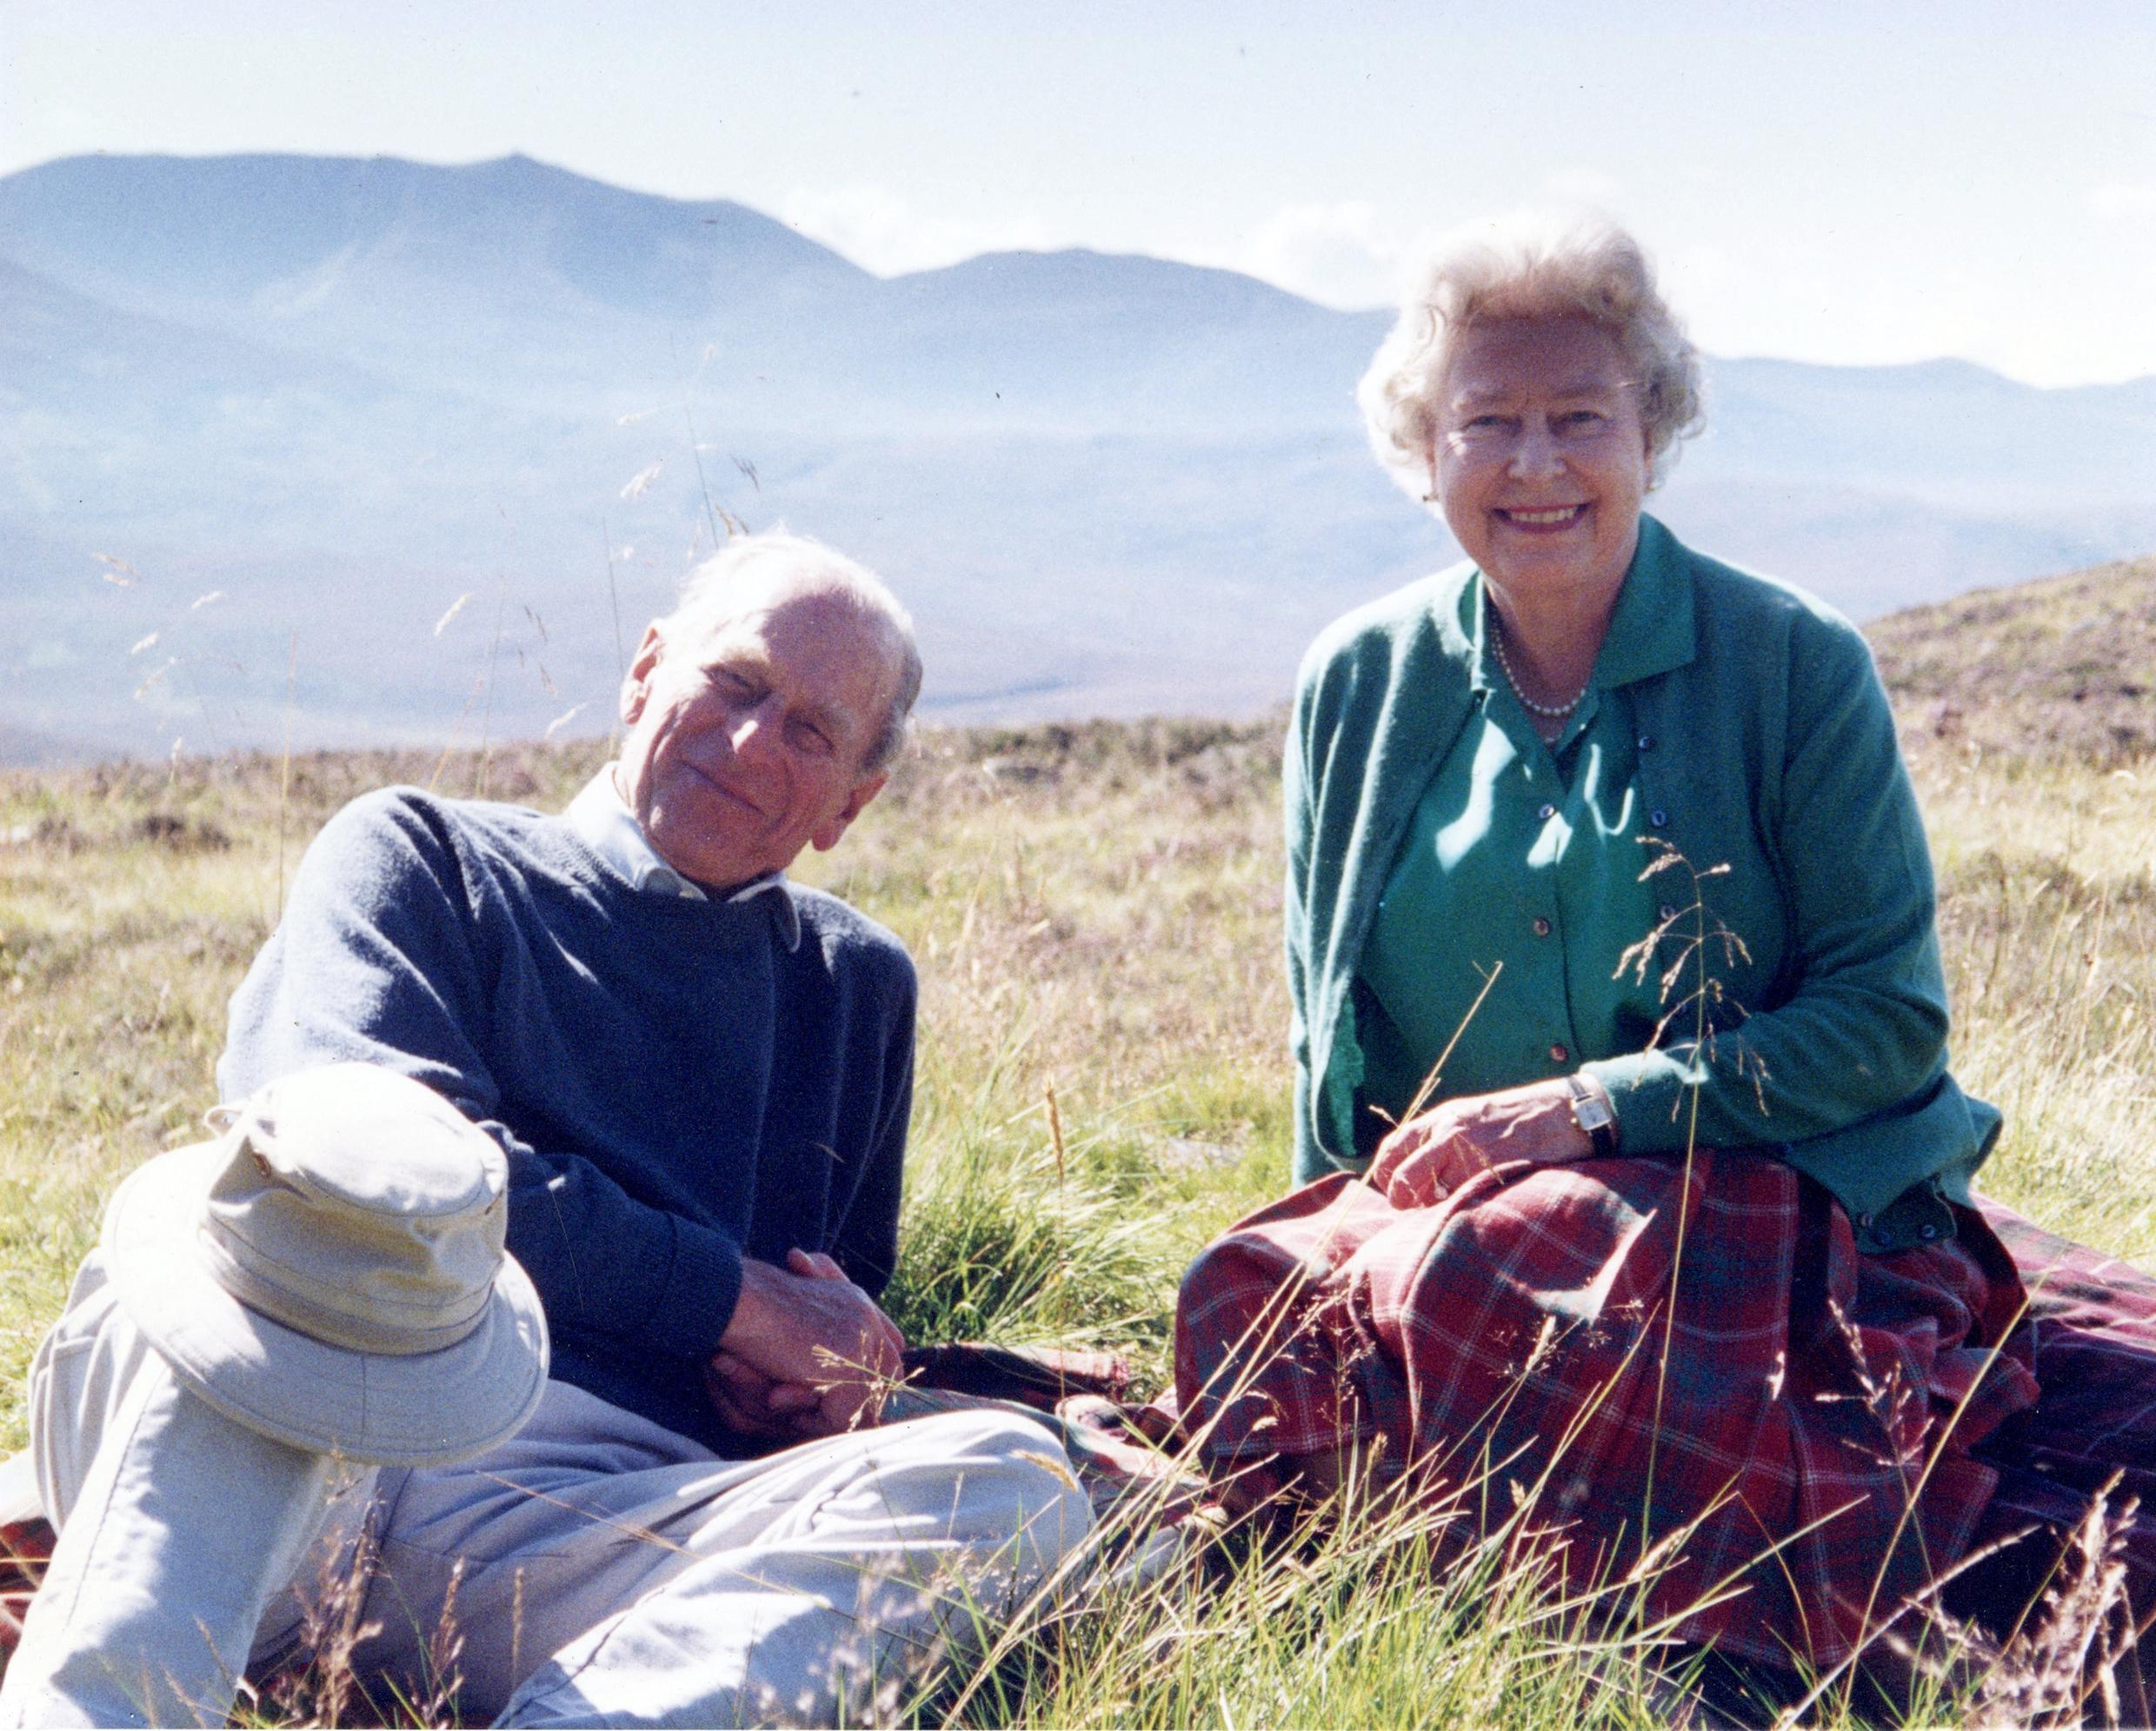 A photograph taken by the royal couple's daughter-in-law Sophie, Countess of Wessex, and released by Buckingham Palace on April 16, 2021, shows Britain's Queen Elizabeth II and her husband Britain's Prince Philip, the Duke of Edinburgh, at the top of the Coyles of Muick near Ballater in the Cairngorms National Park in Scotland in 2003.